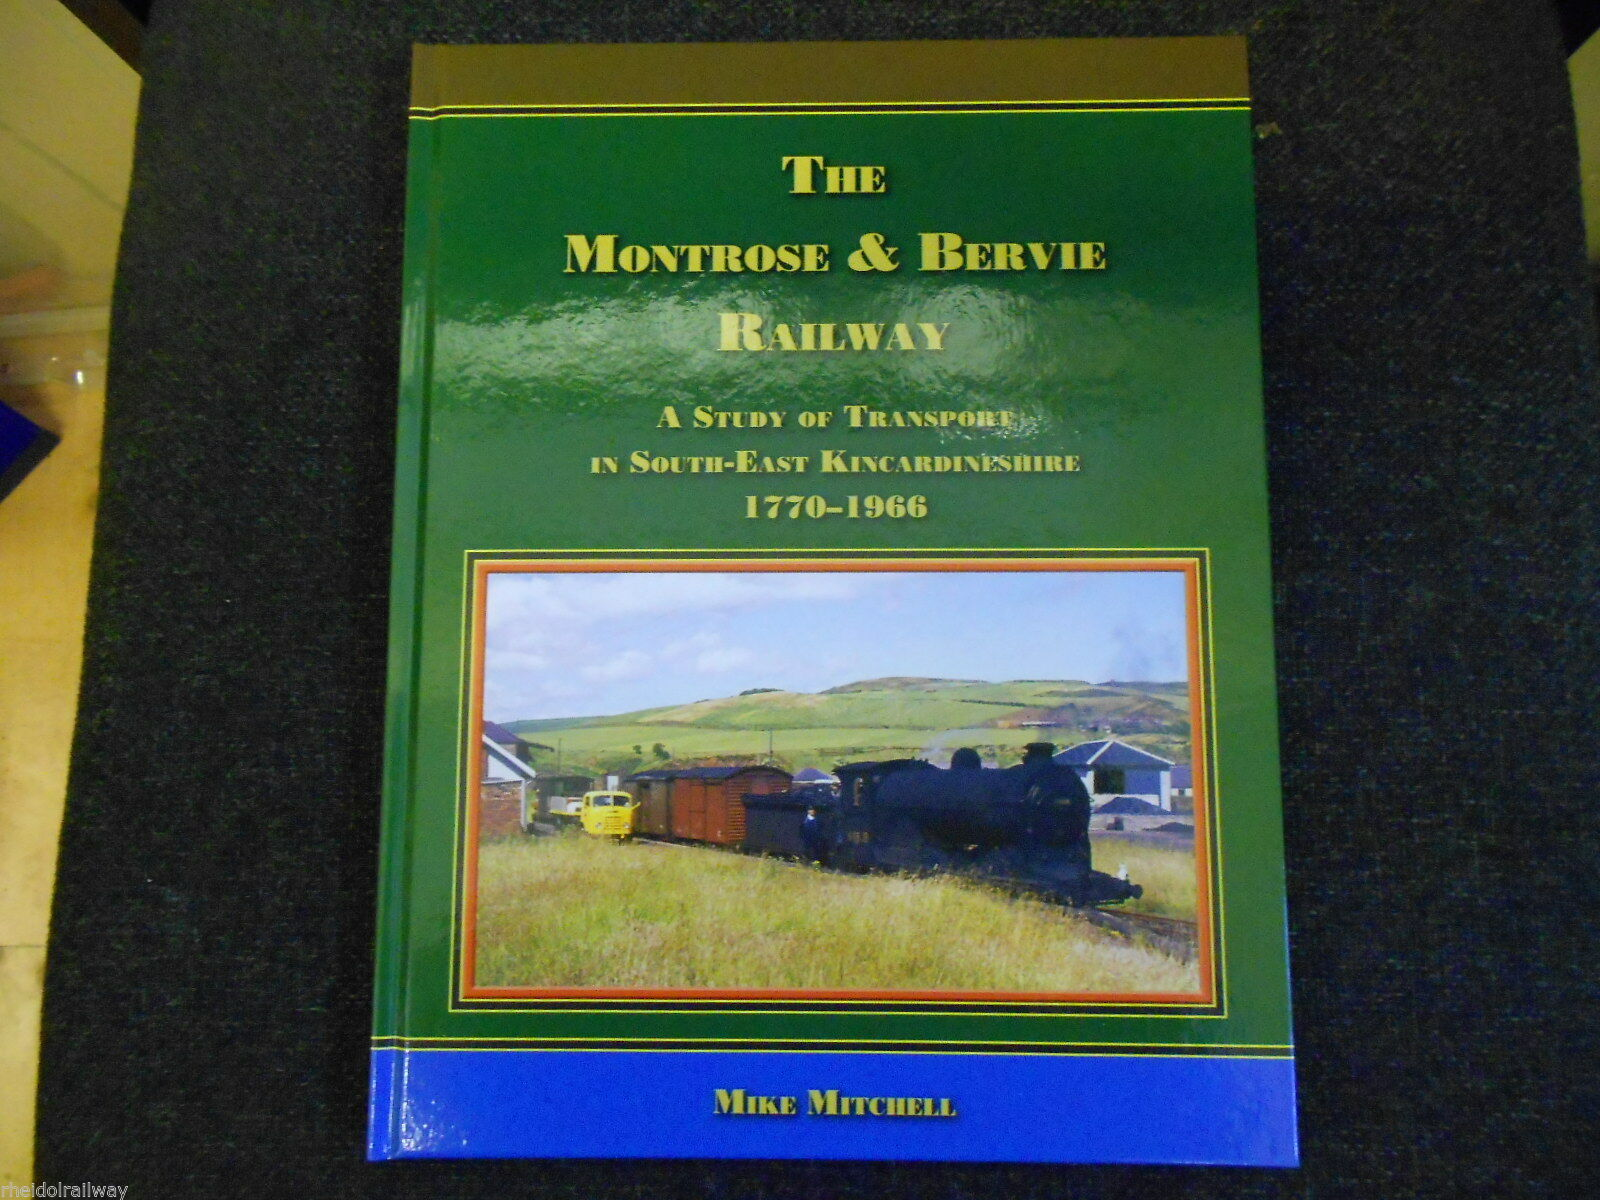 The Montrose & Bervie Railway by Mike Mitchell North british